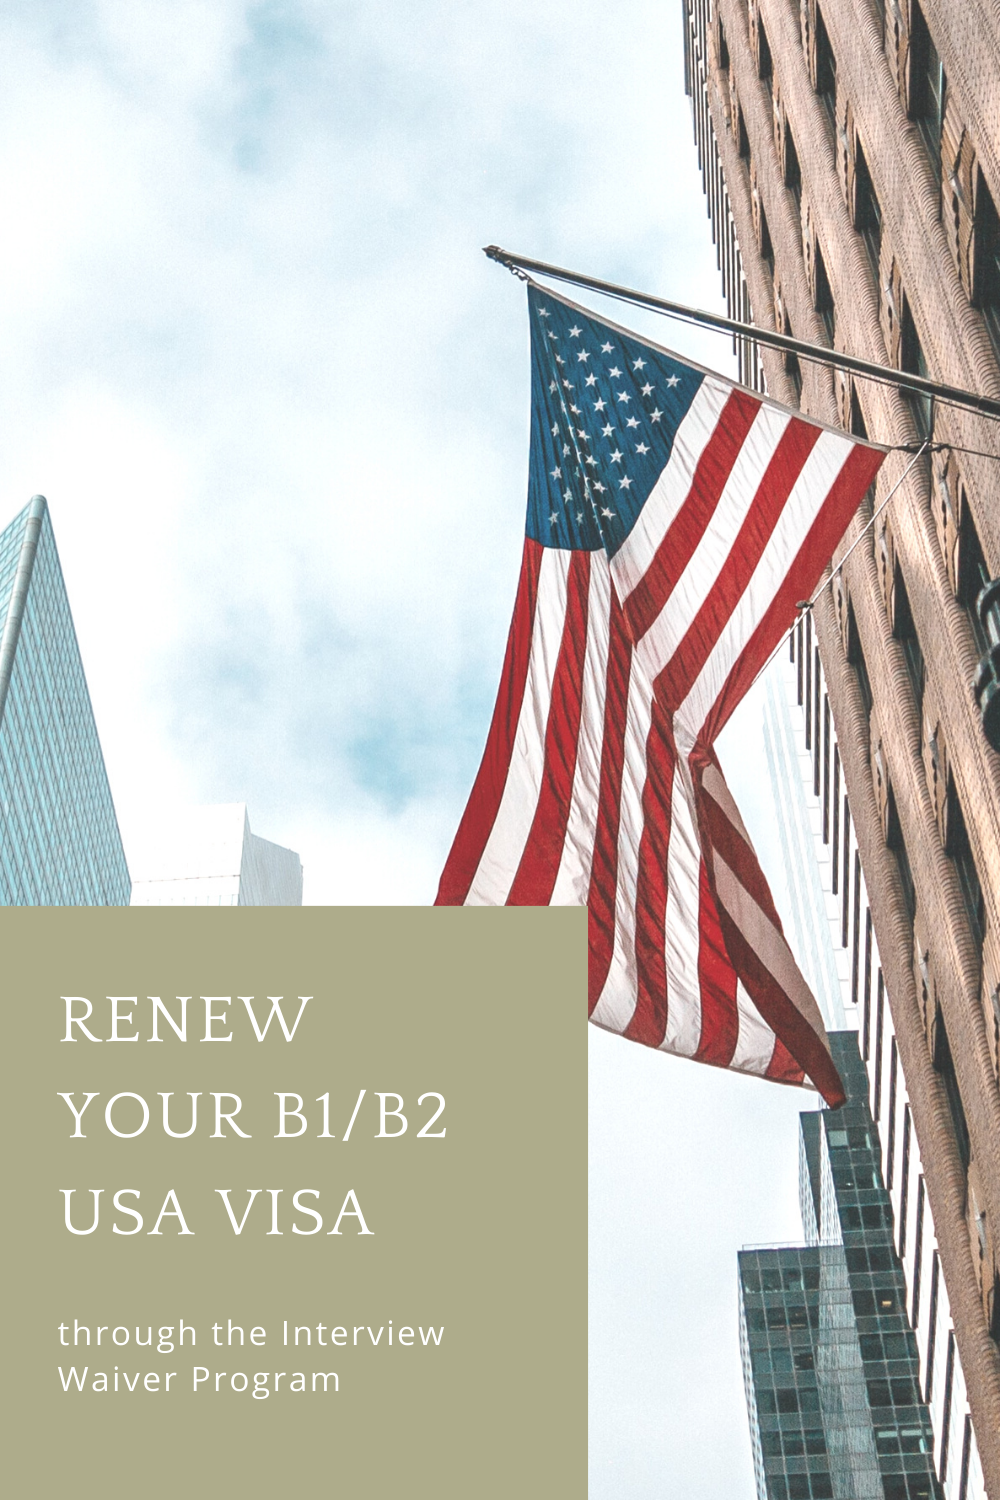 How to Renew your B1 B2 USA Visa through the Interview Waiver Program